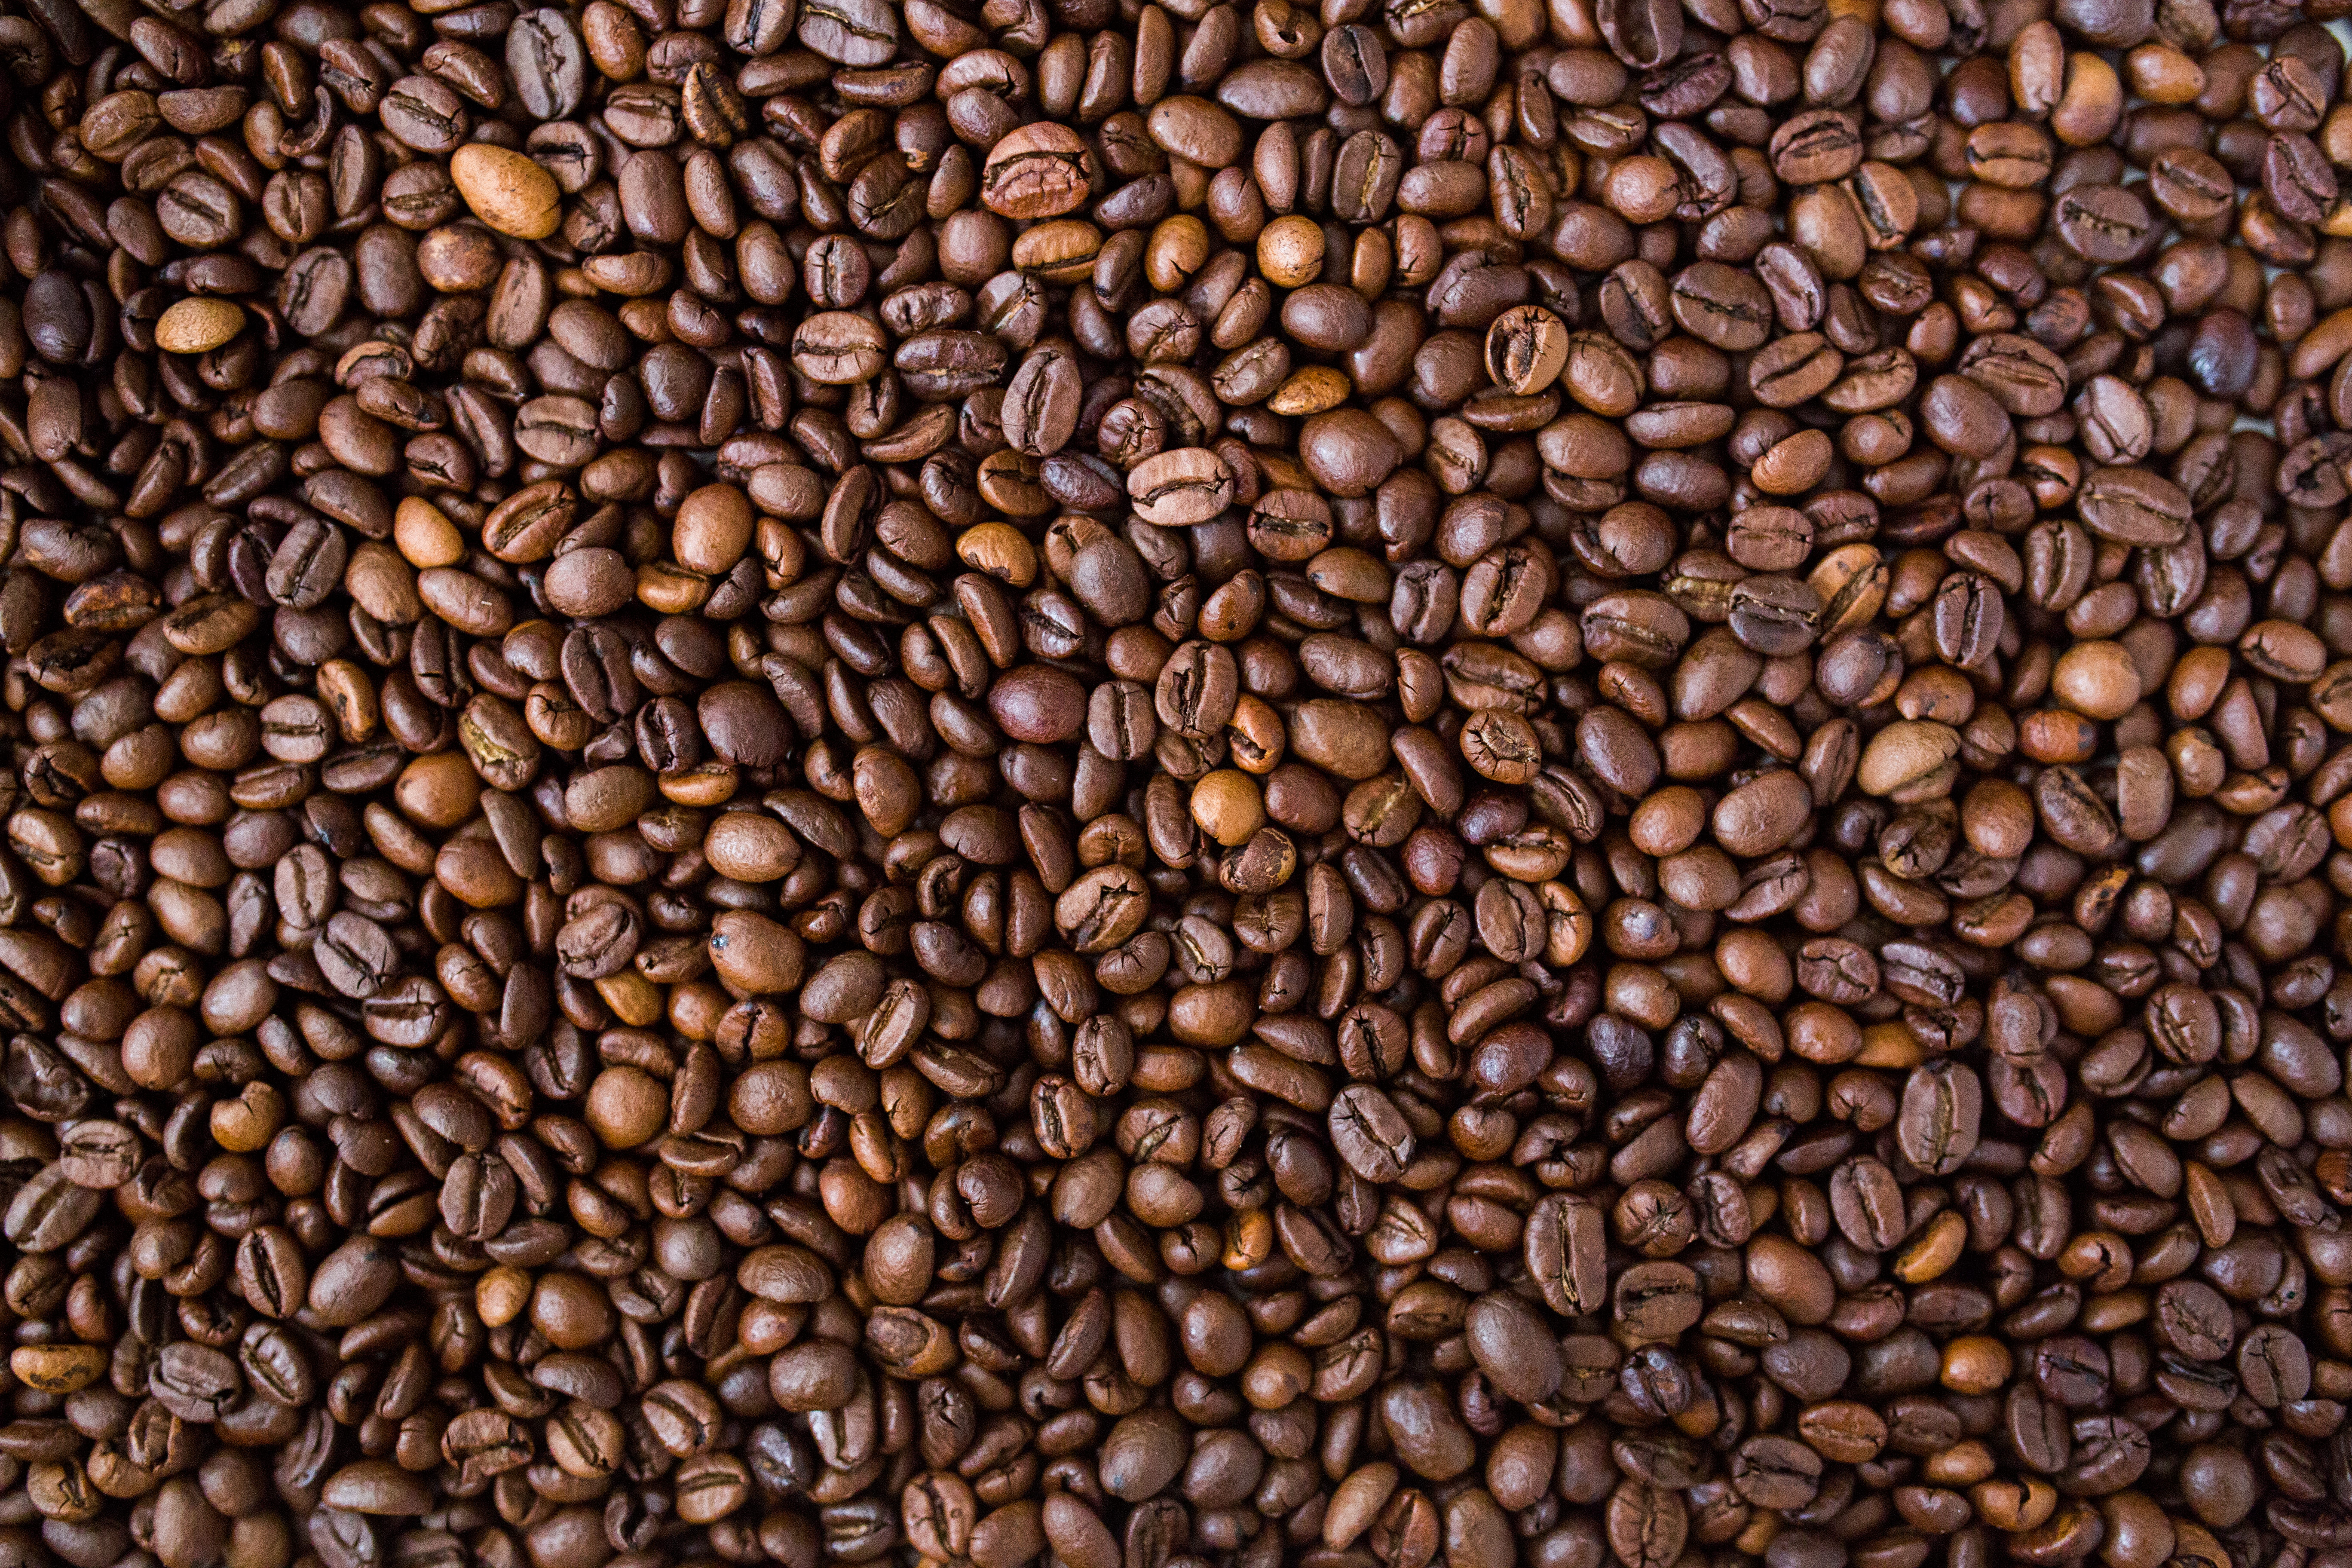 Brown coffee beans photo